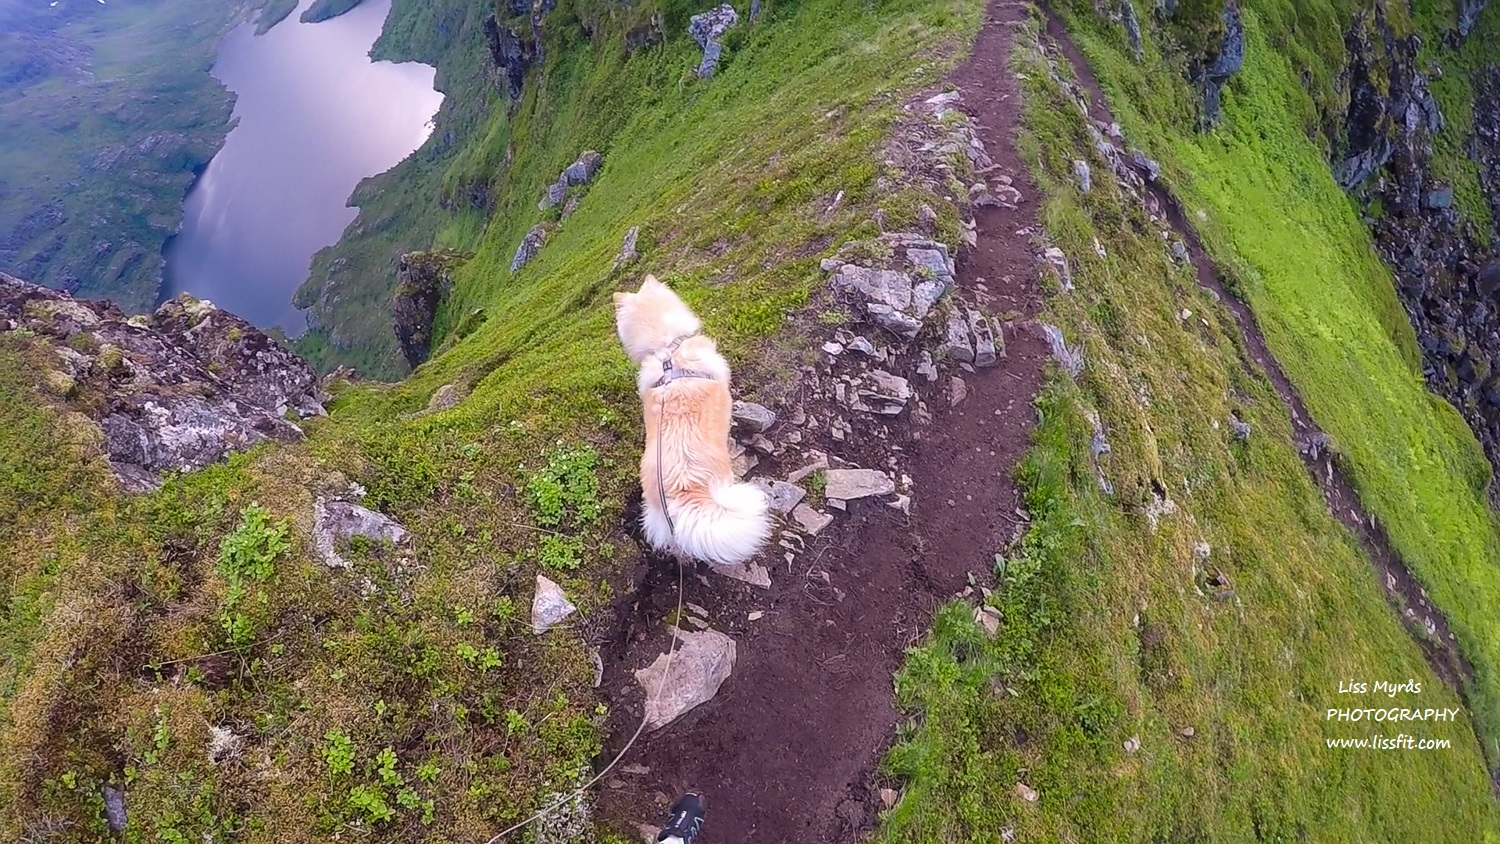 lapphund dog hiking norway lofoten landscape